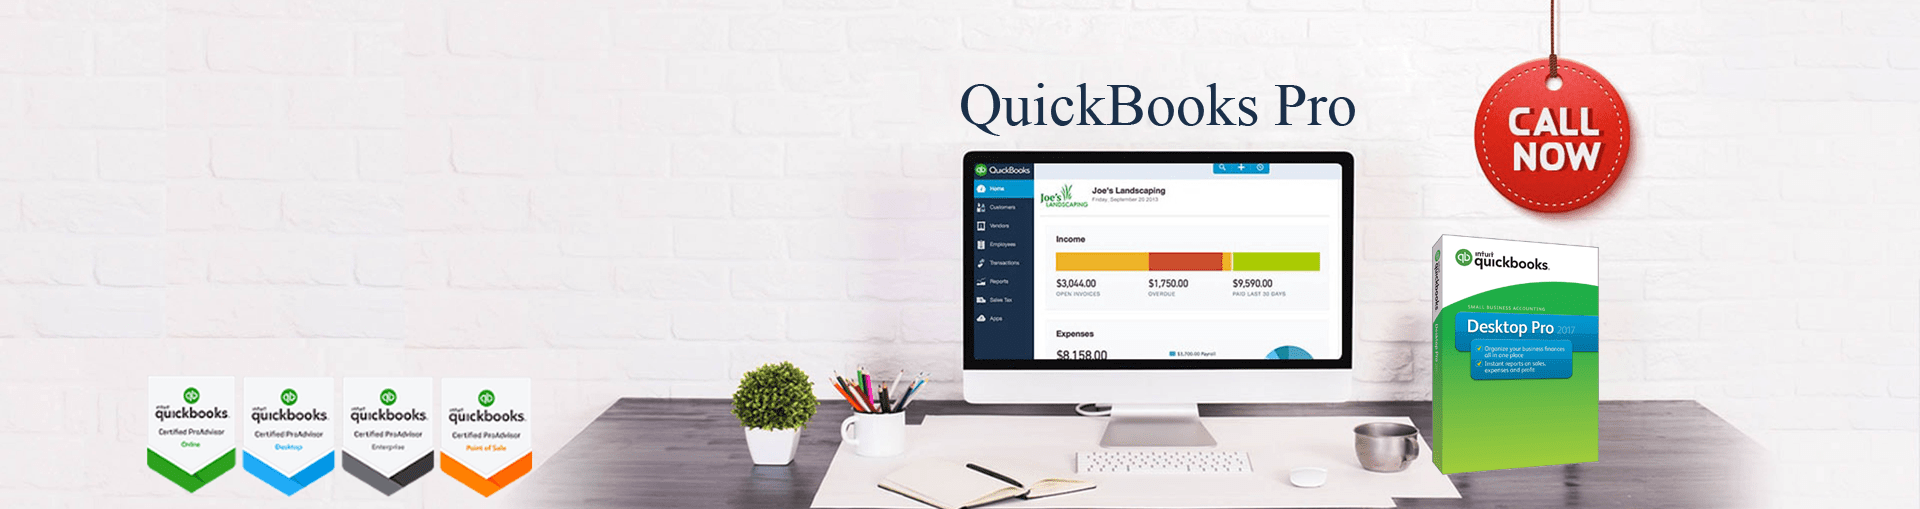 Intuit QuickBooks Point of Sale support Number